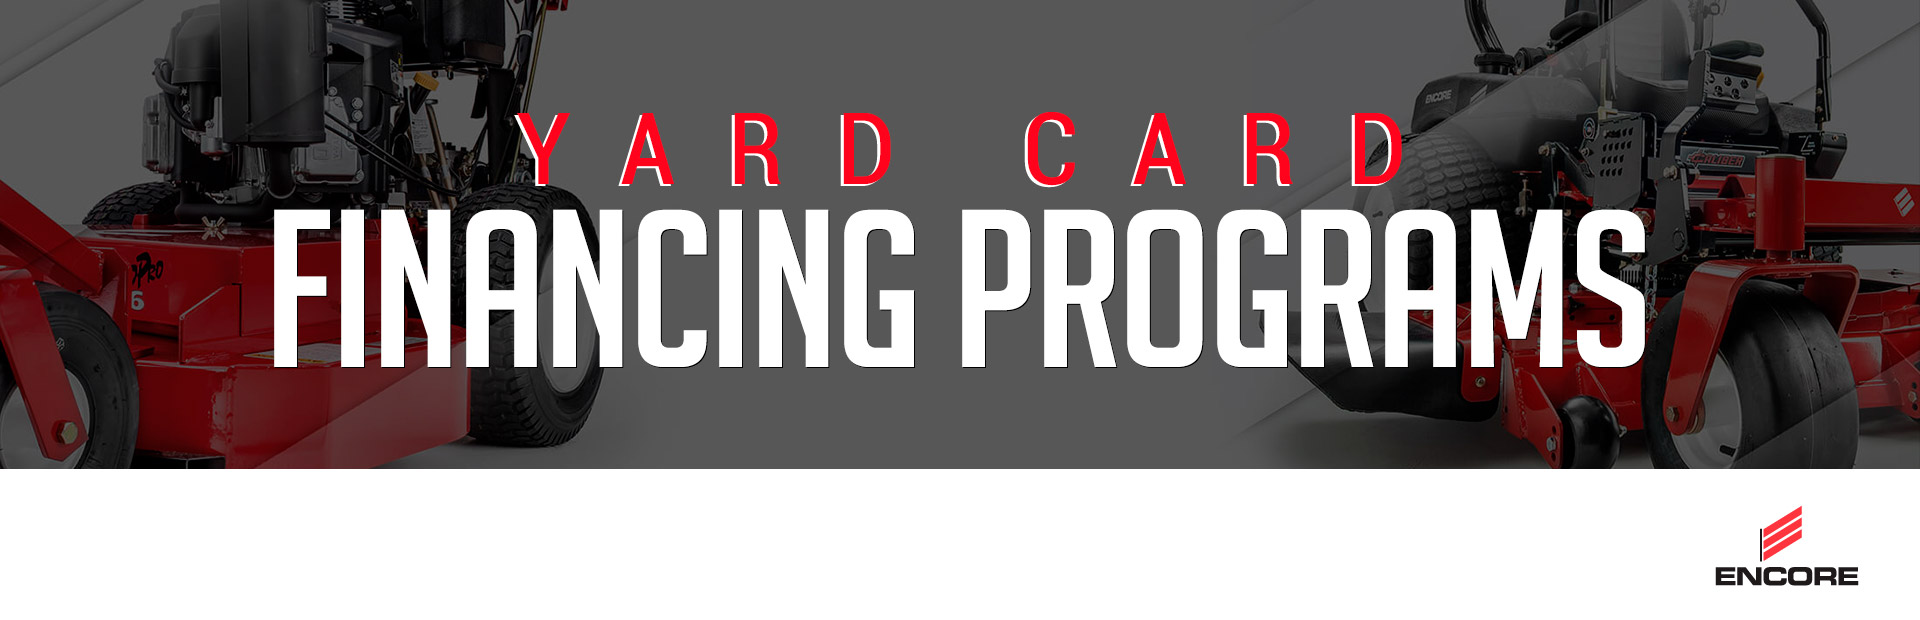 Encore Power Equipment: Encore – Yard Card Financing Programs